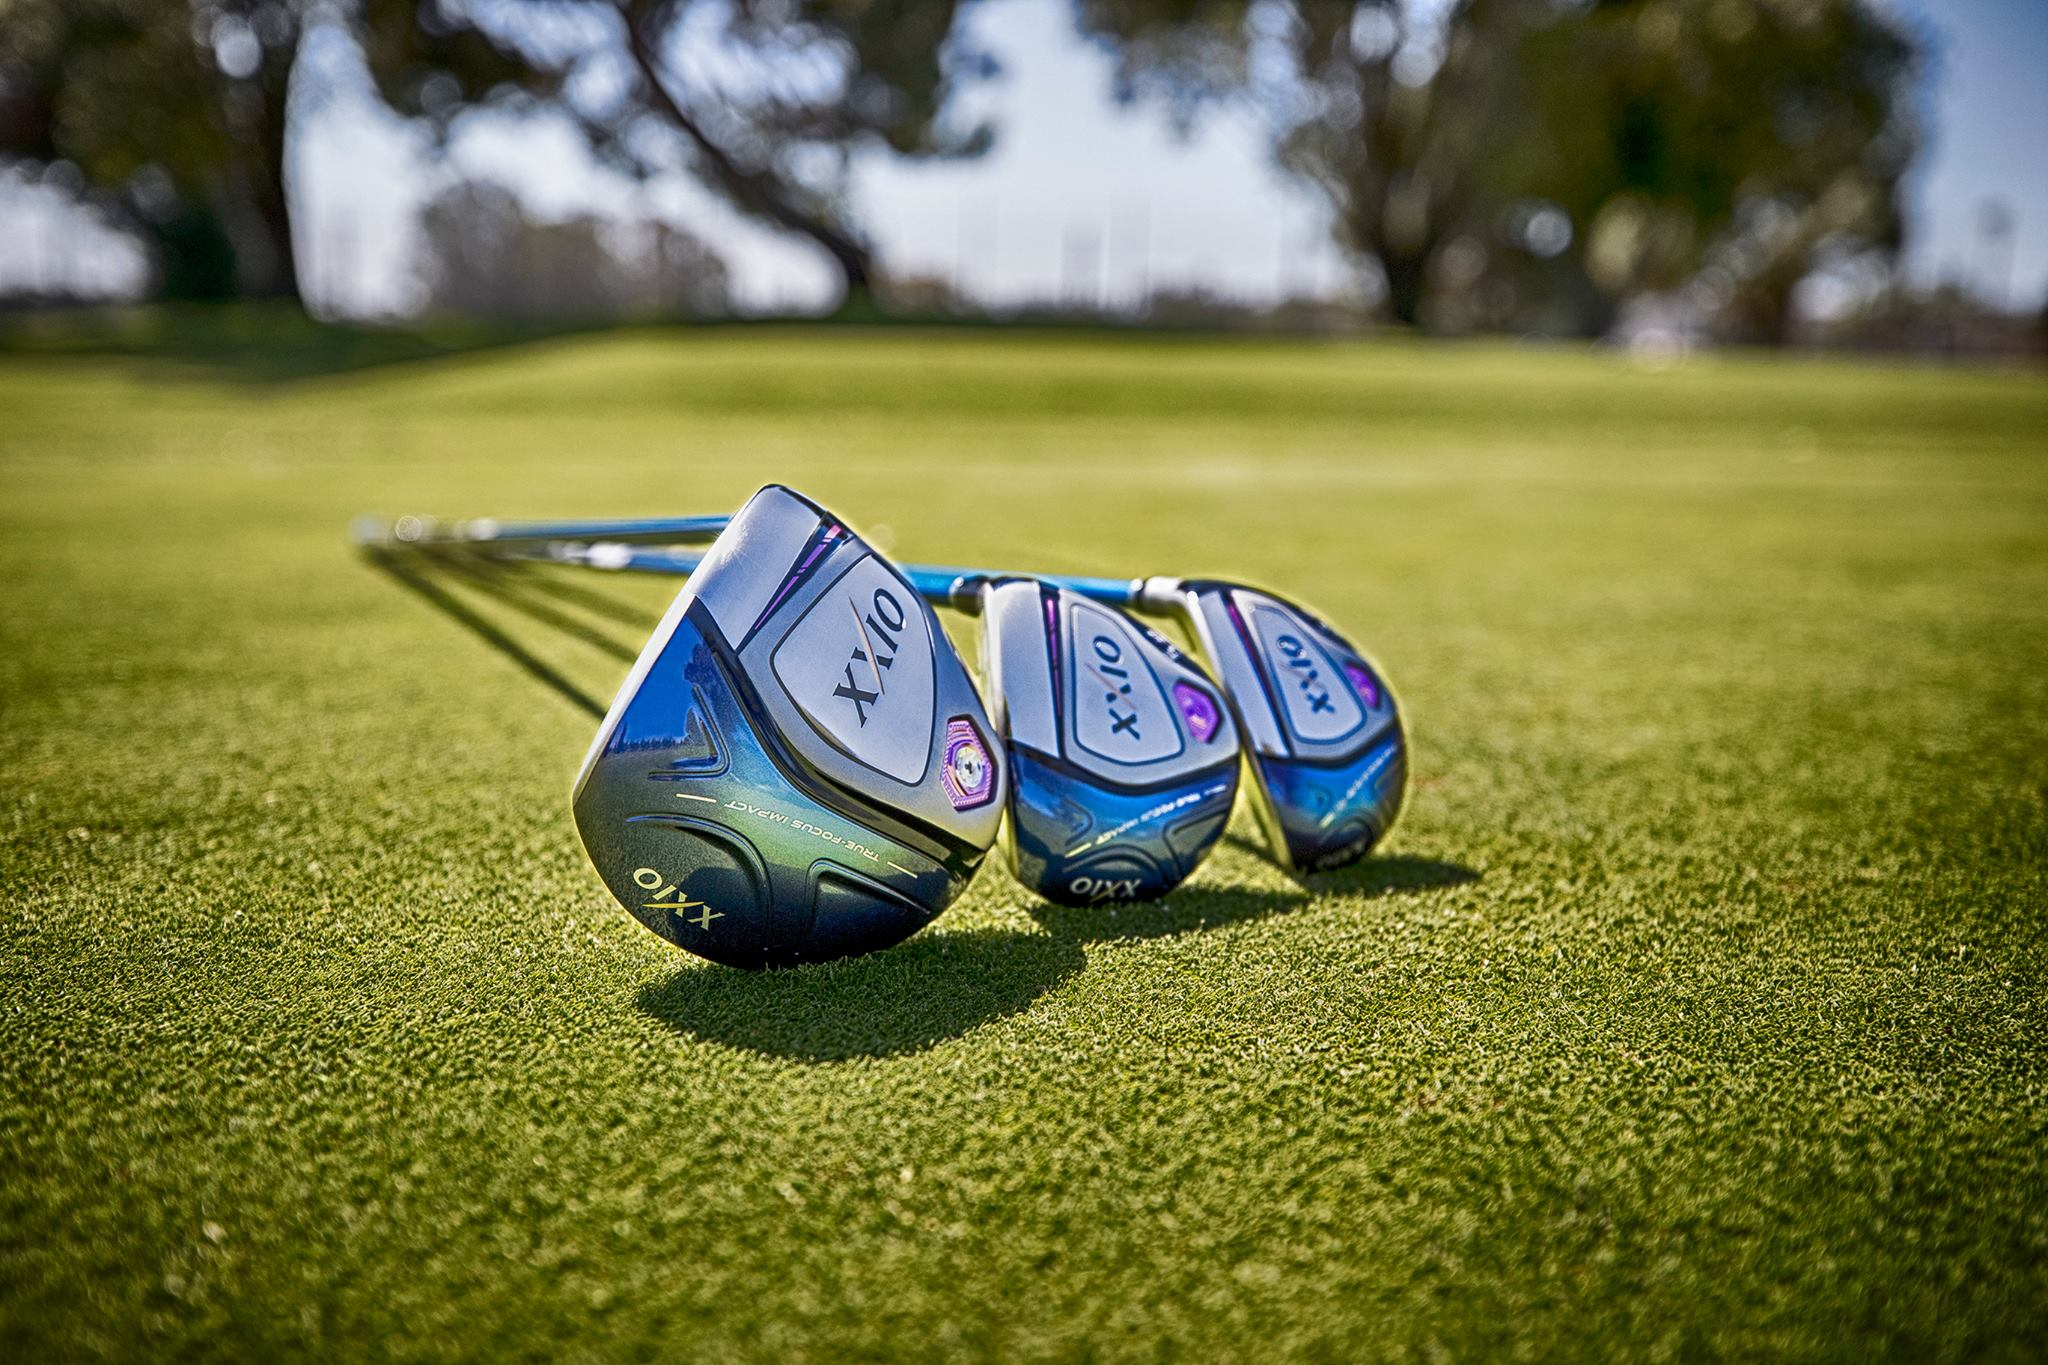 XXIO Golf Demo Day at Valley Golf Center - March